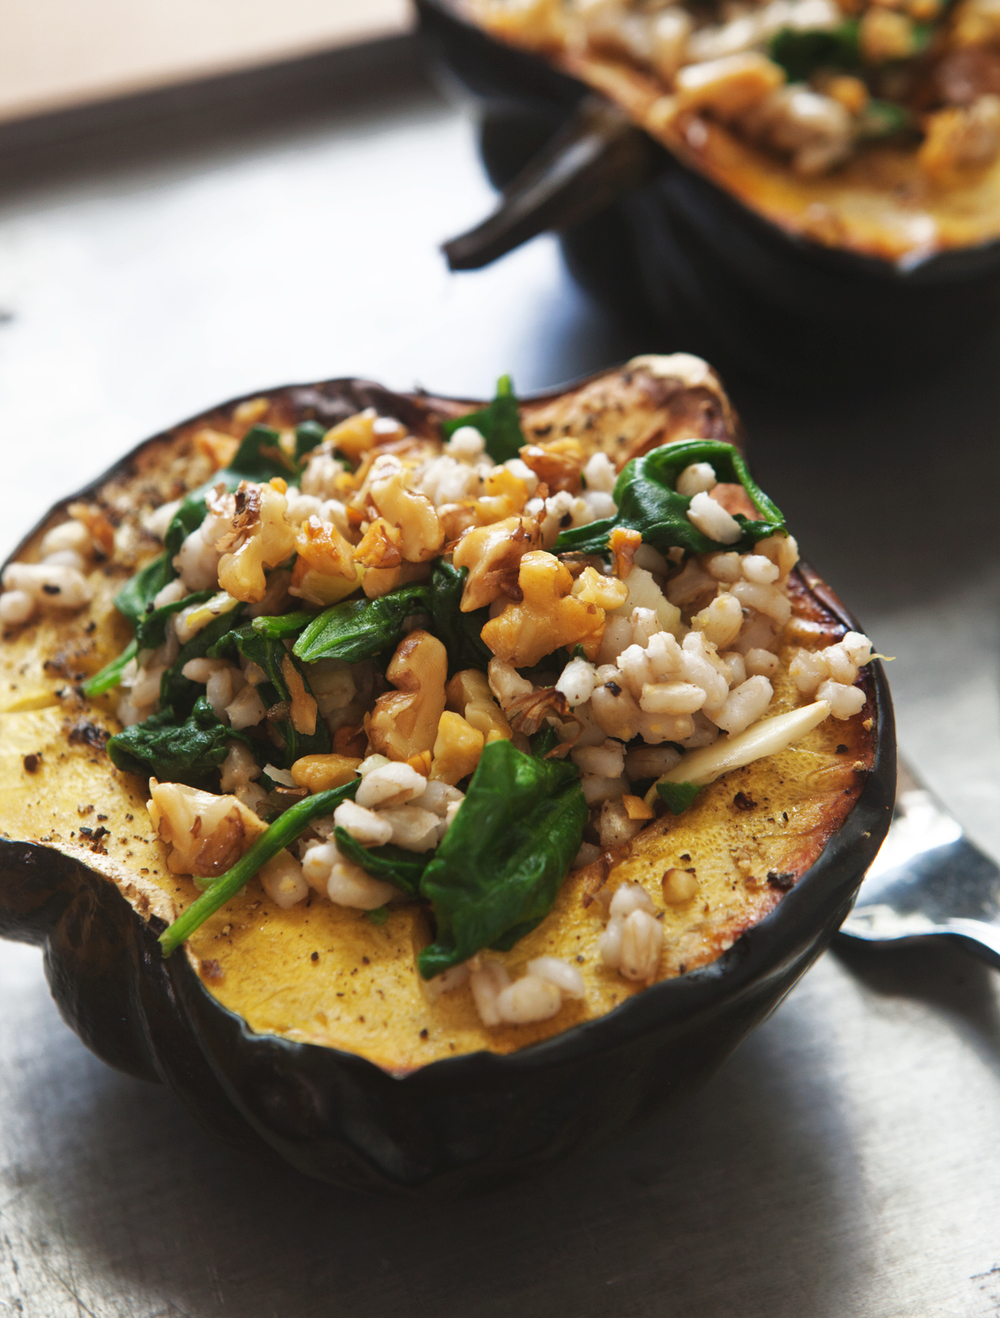 roasted acorn squash bowls with barley spinach salad_003.jpg